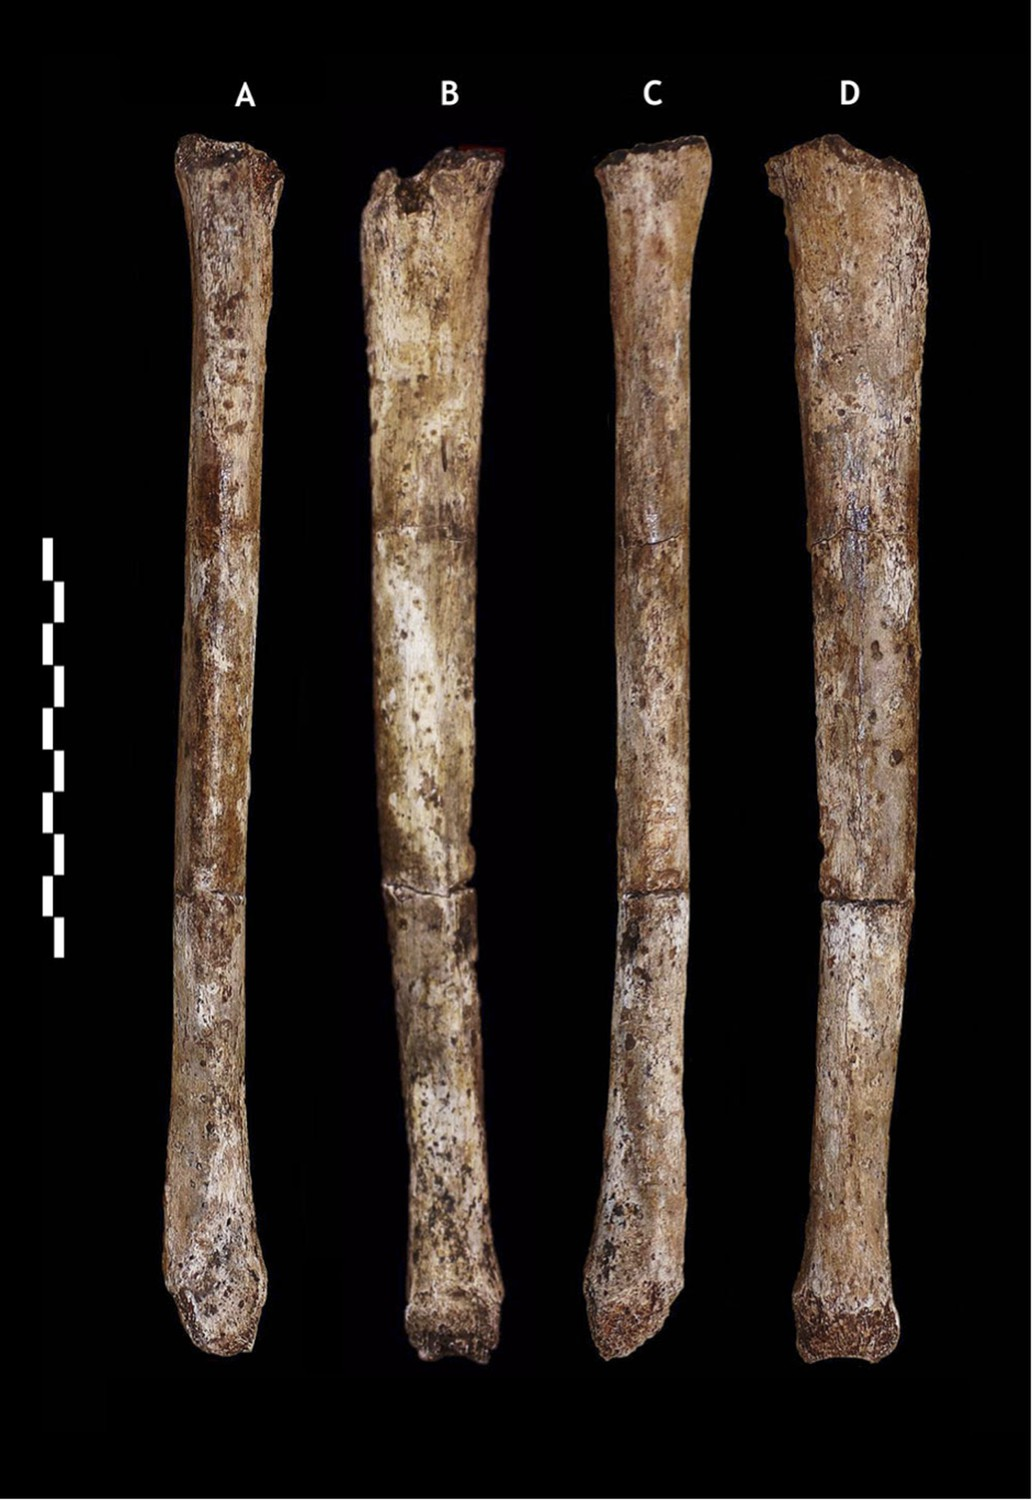 Homo naledi, a new species of the genus Homo from the